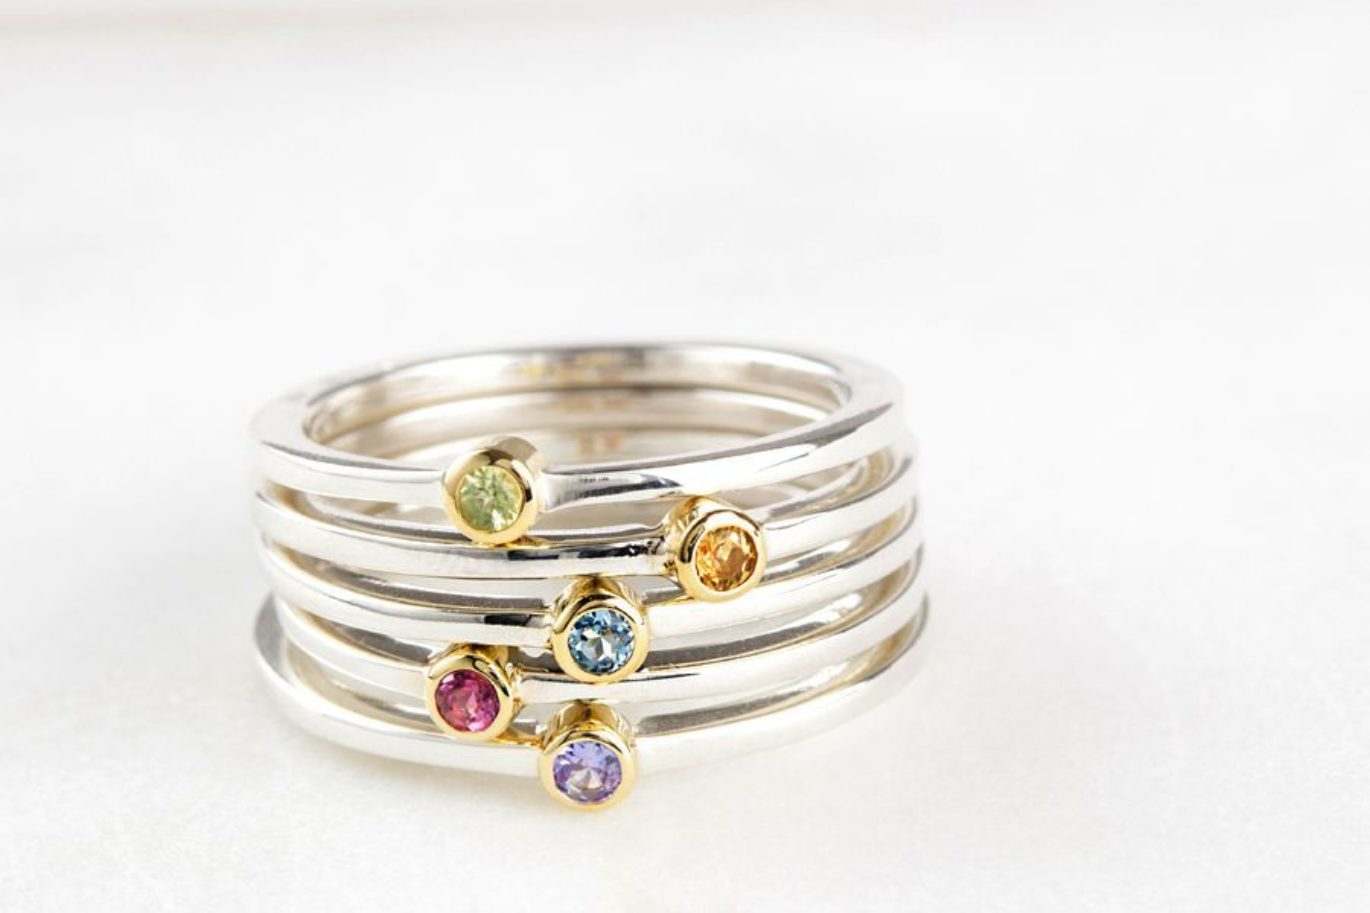 The rise and rise of Stacking Rings - I first made a series of stacking rings as a commission back in 2010 - since then they have became very fashionable.